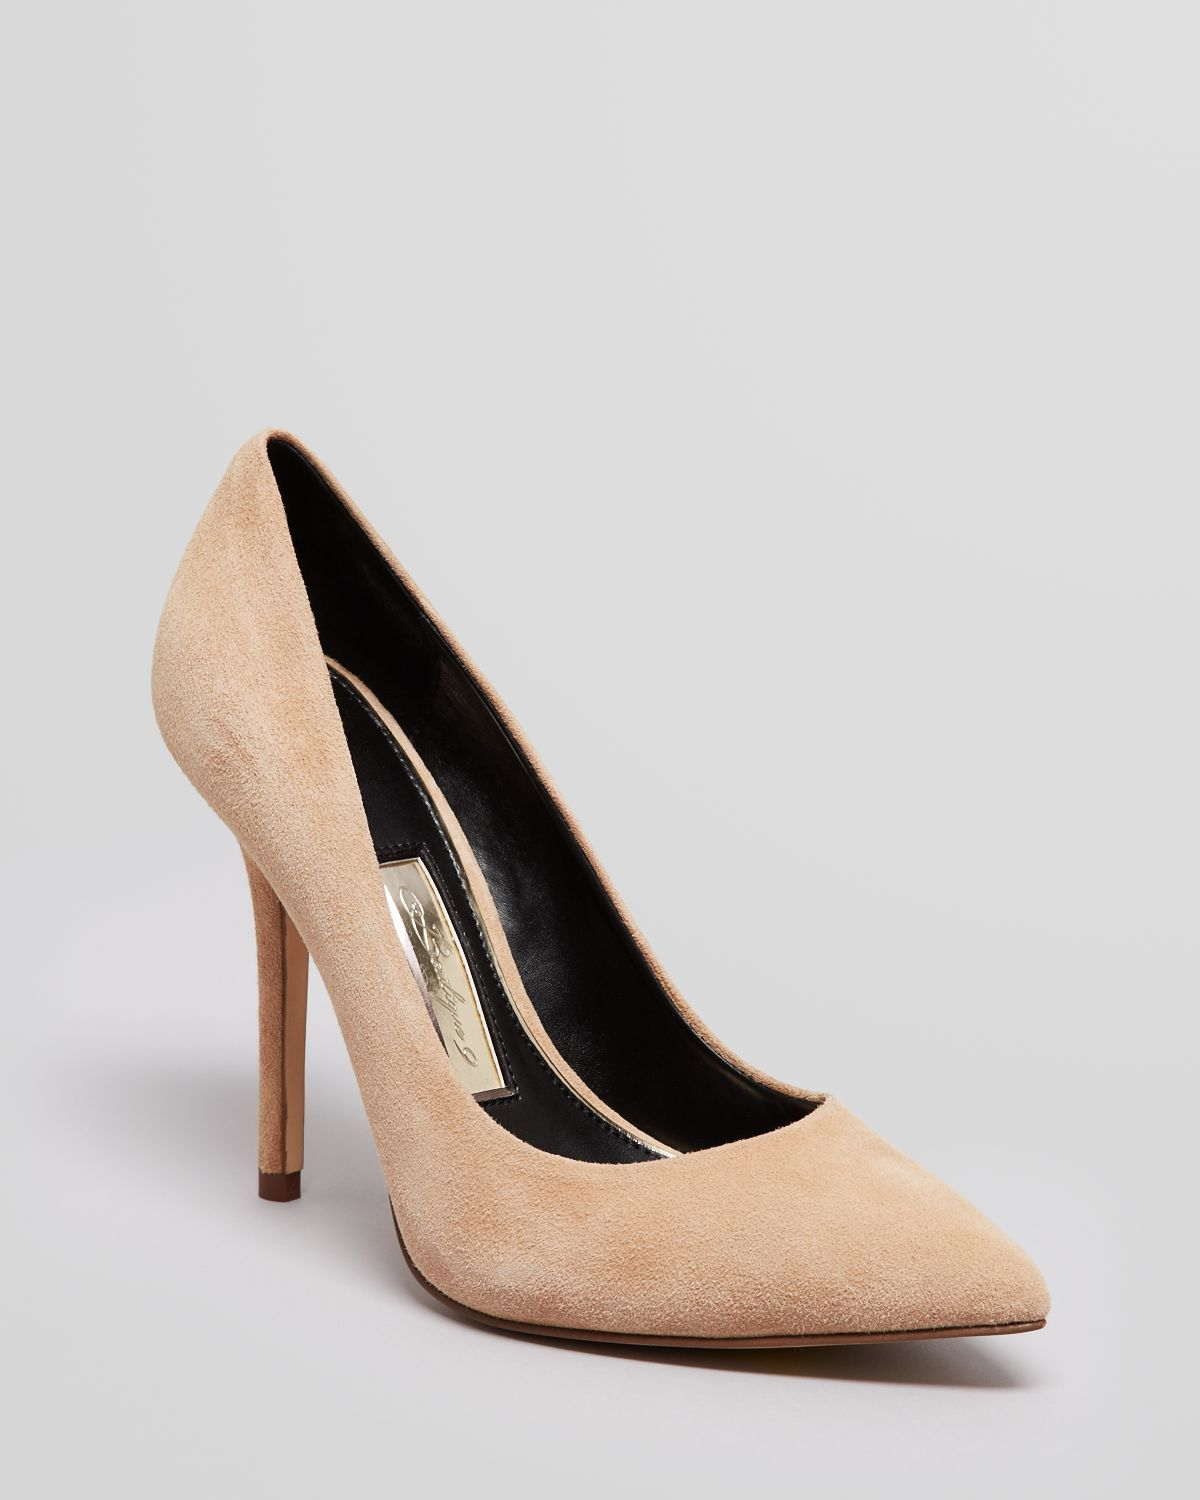 Boutique 9 Pointed Toe Pumps - Justine   Bloomingdale's